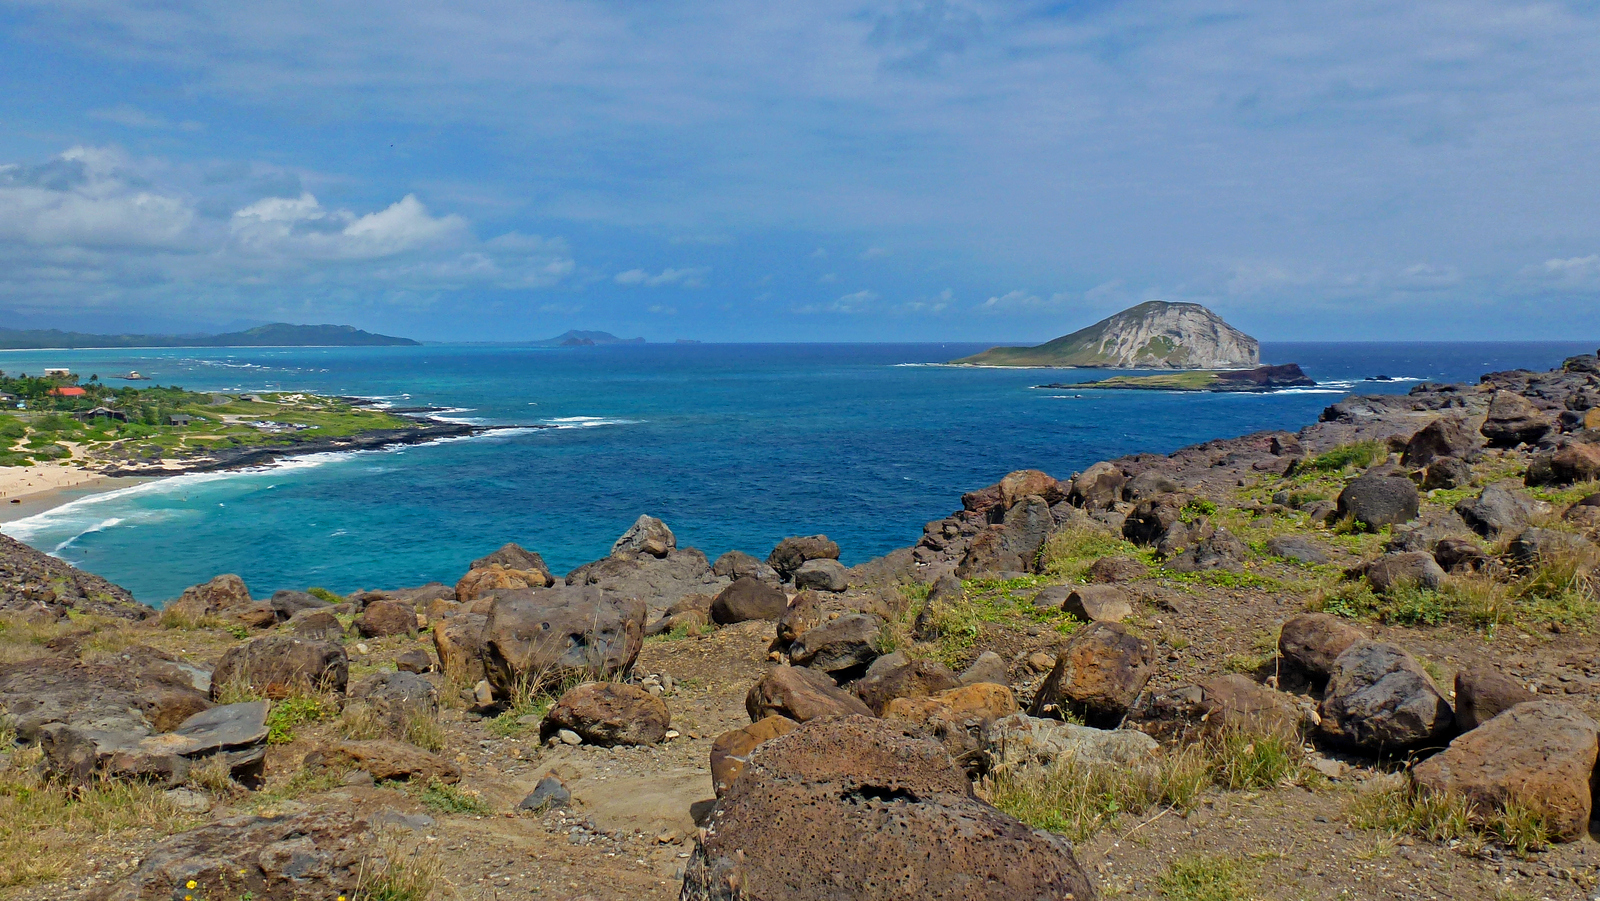 Rabbit Island and Black Rock off of Makapu'u Point, one of the more prominent islands off Oahu.